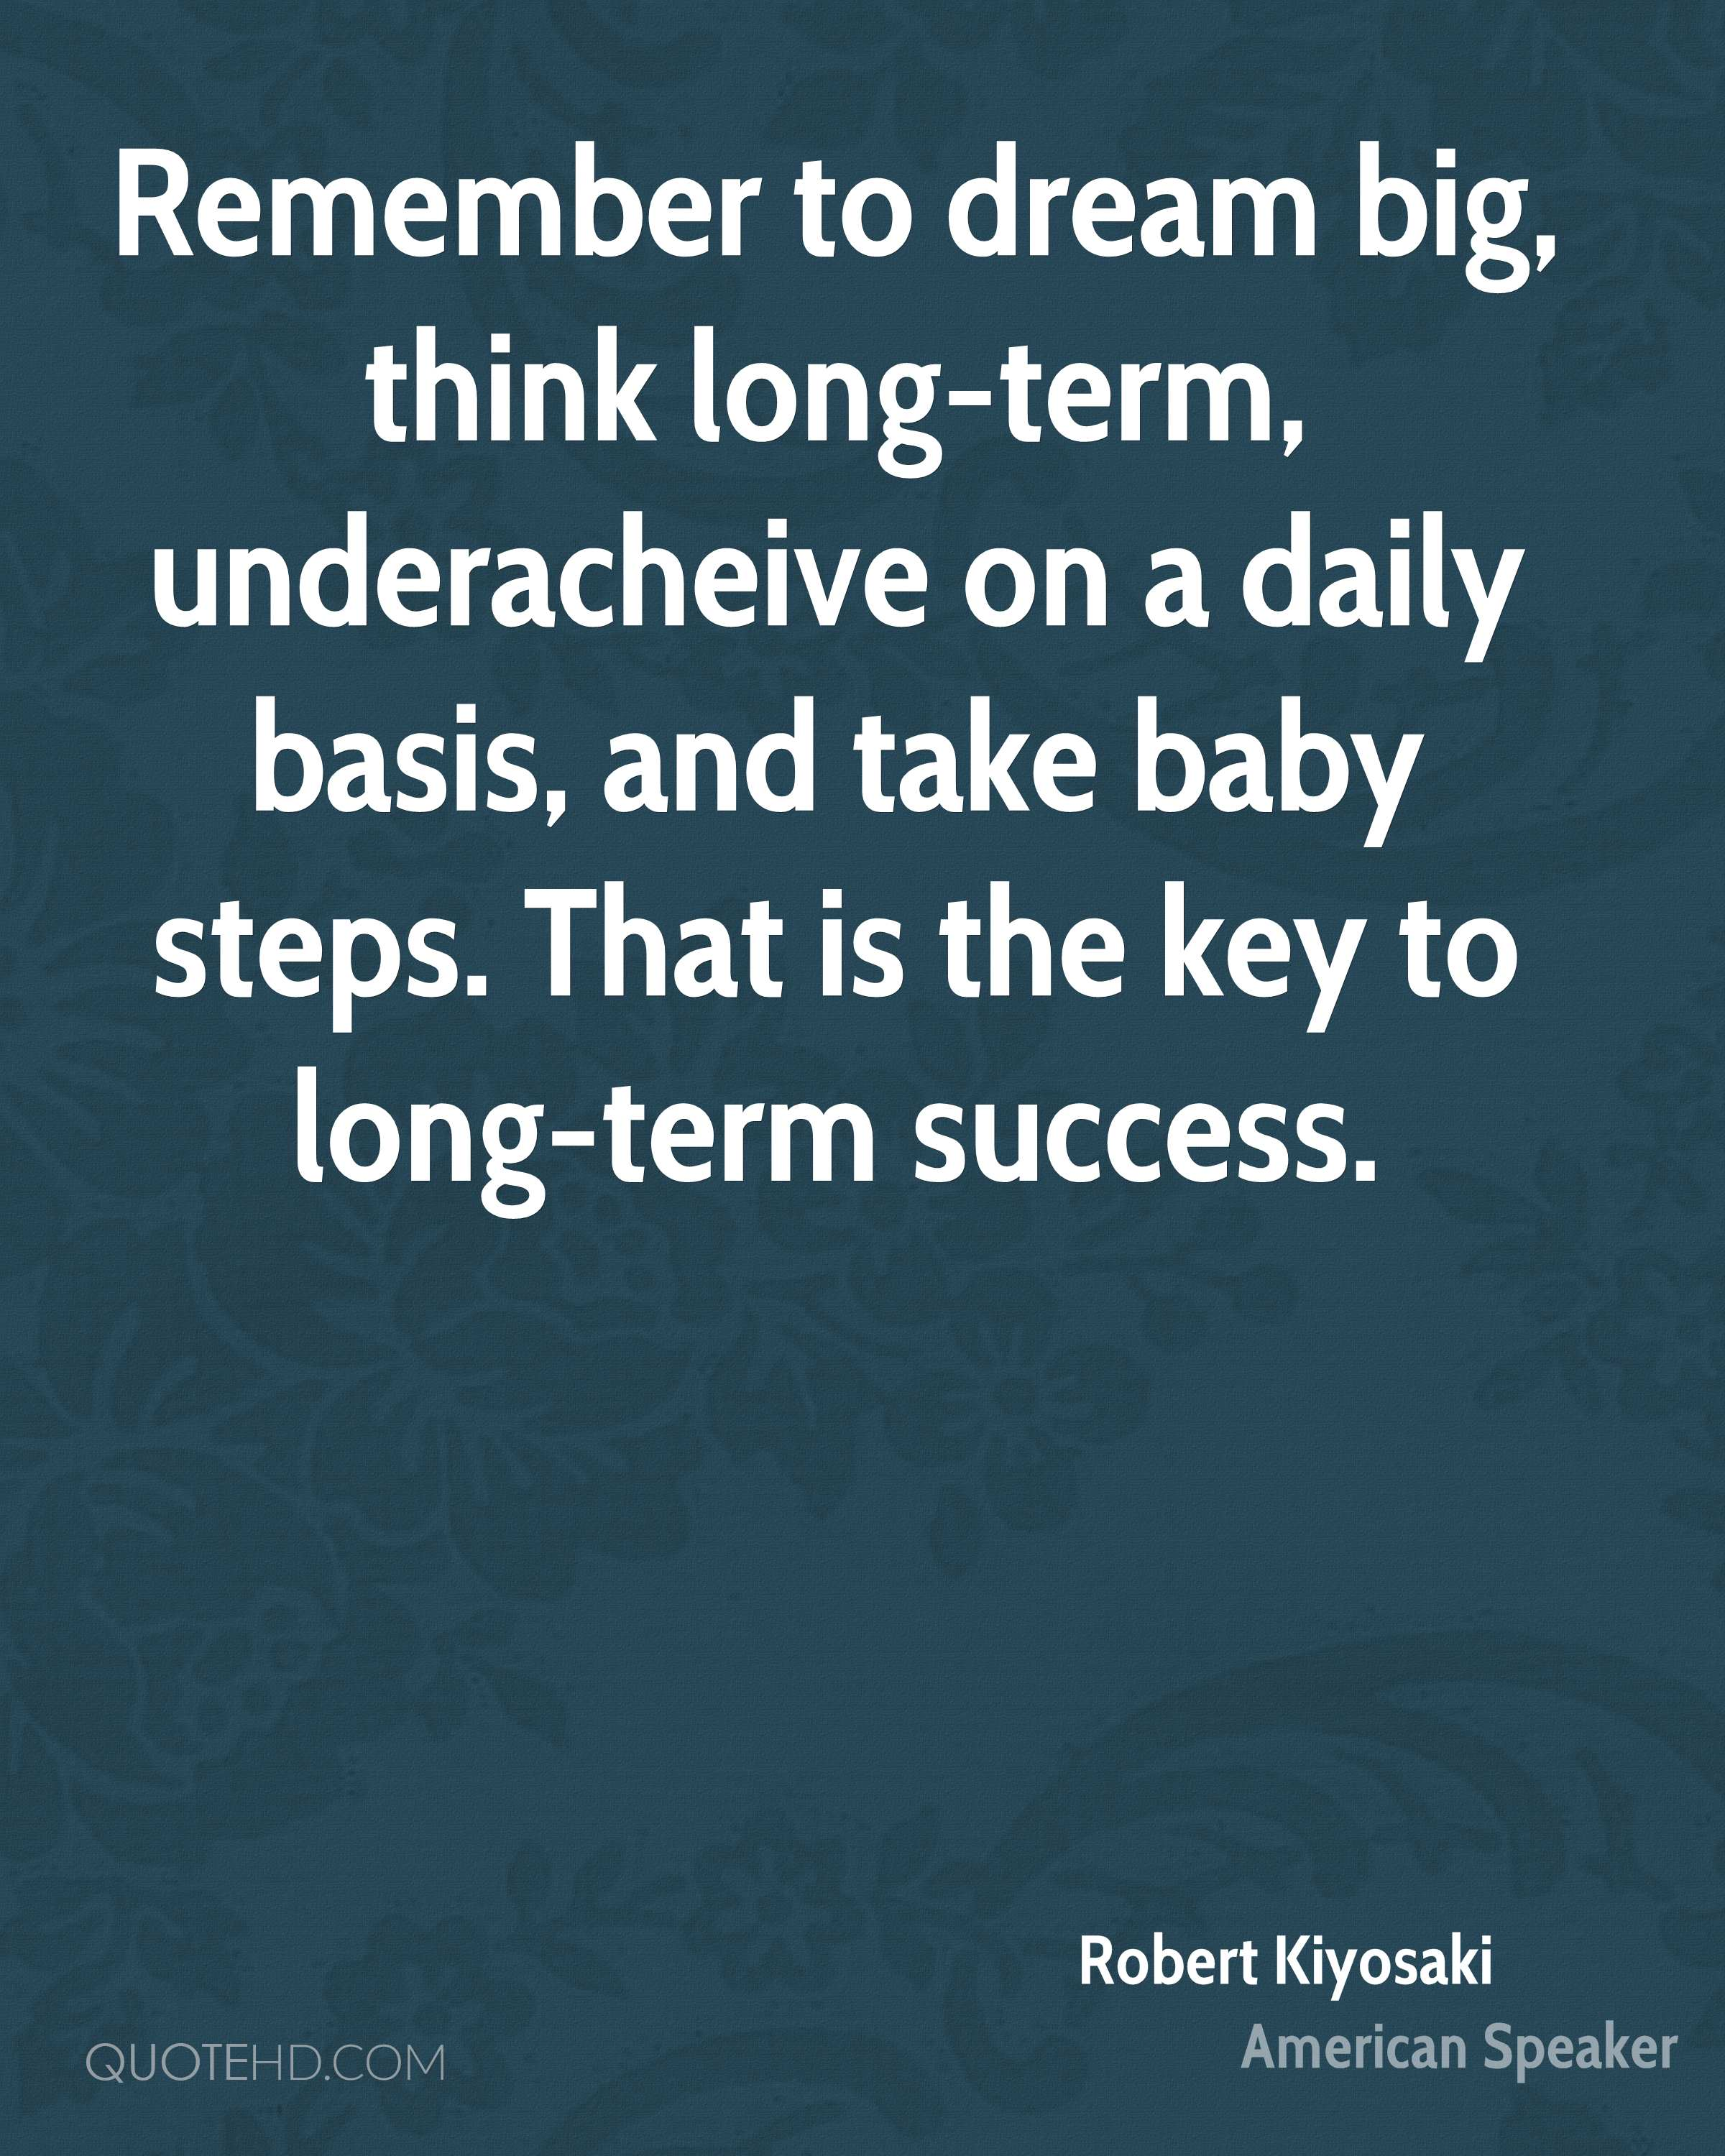 Remember to dream big, think long-term, underacheive on a daily basis, and take baby steps. That is the key to long-term success.